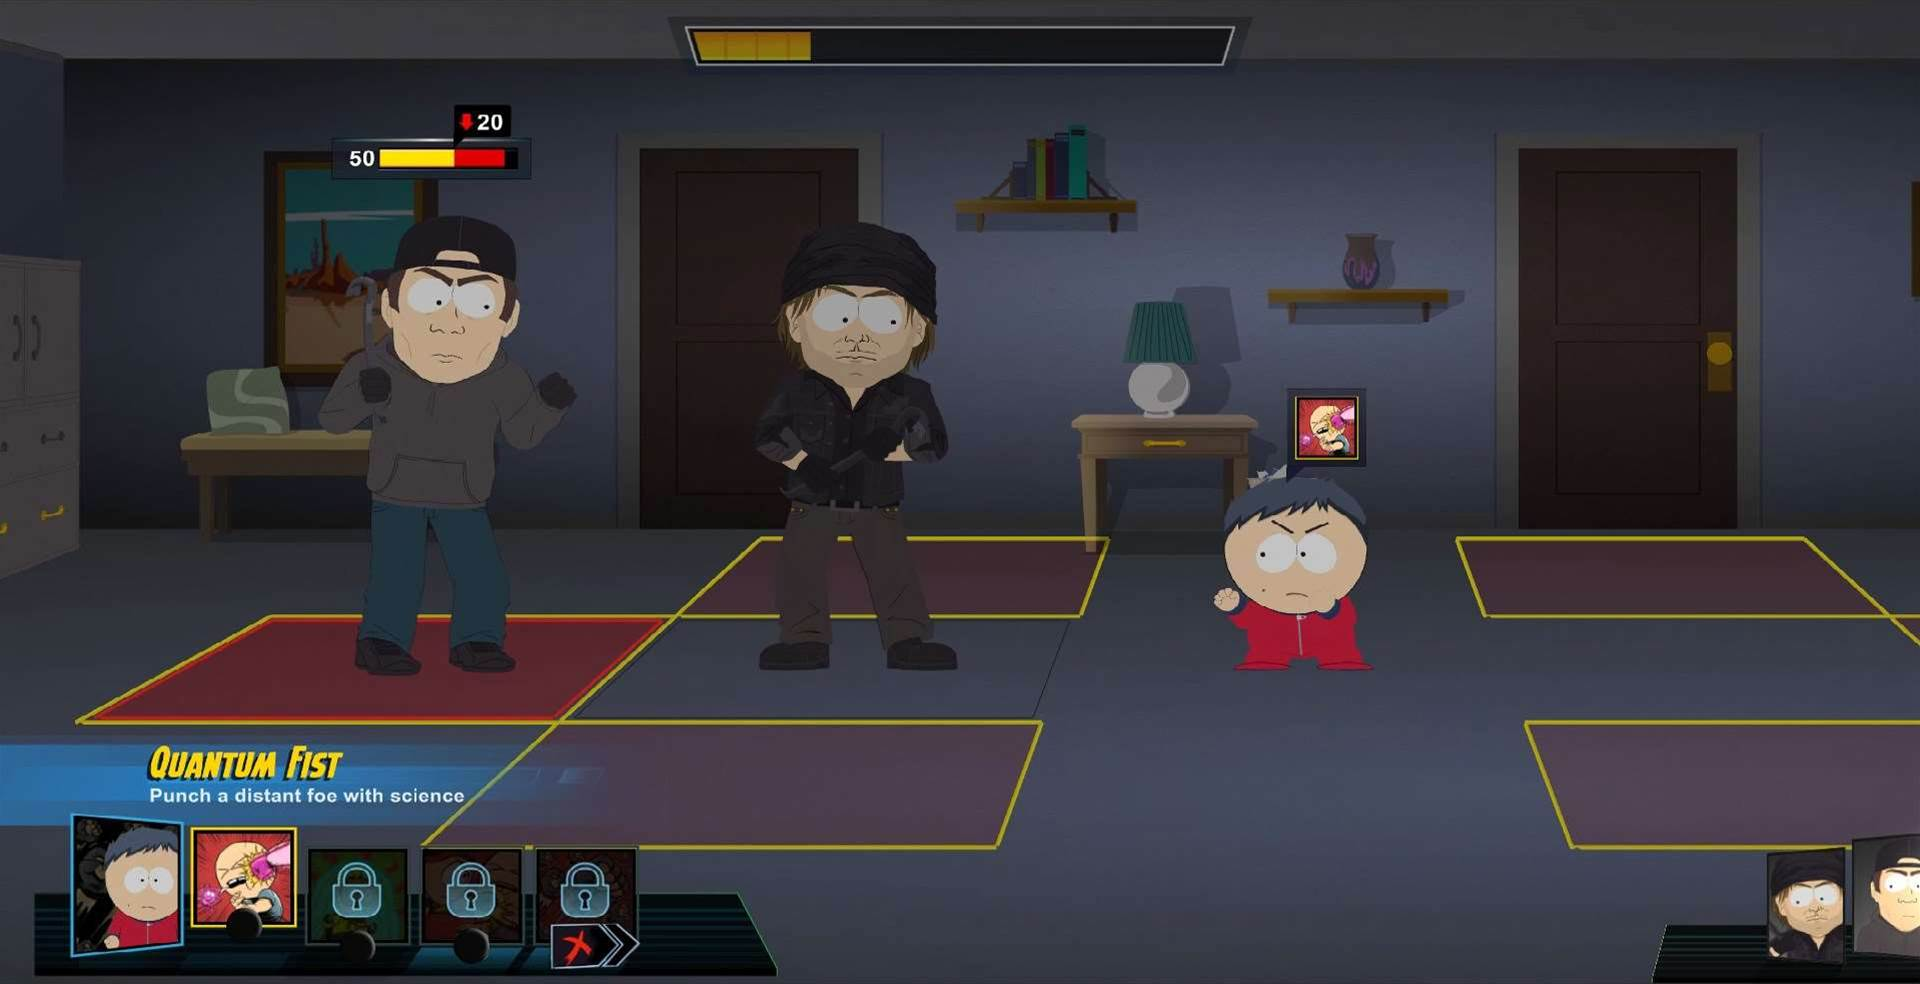 South Park: The Fractured But Whole screens